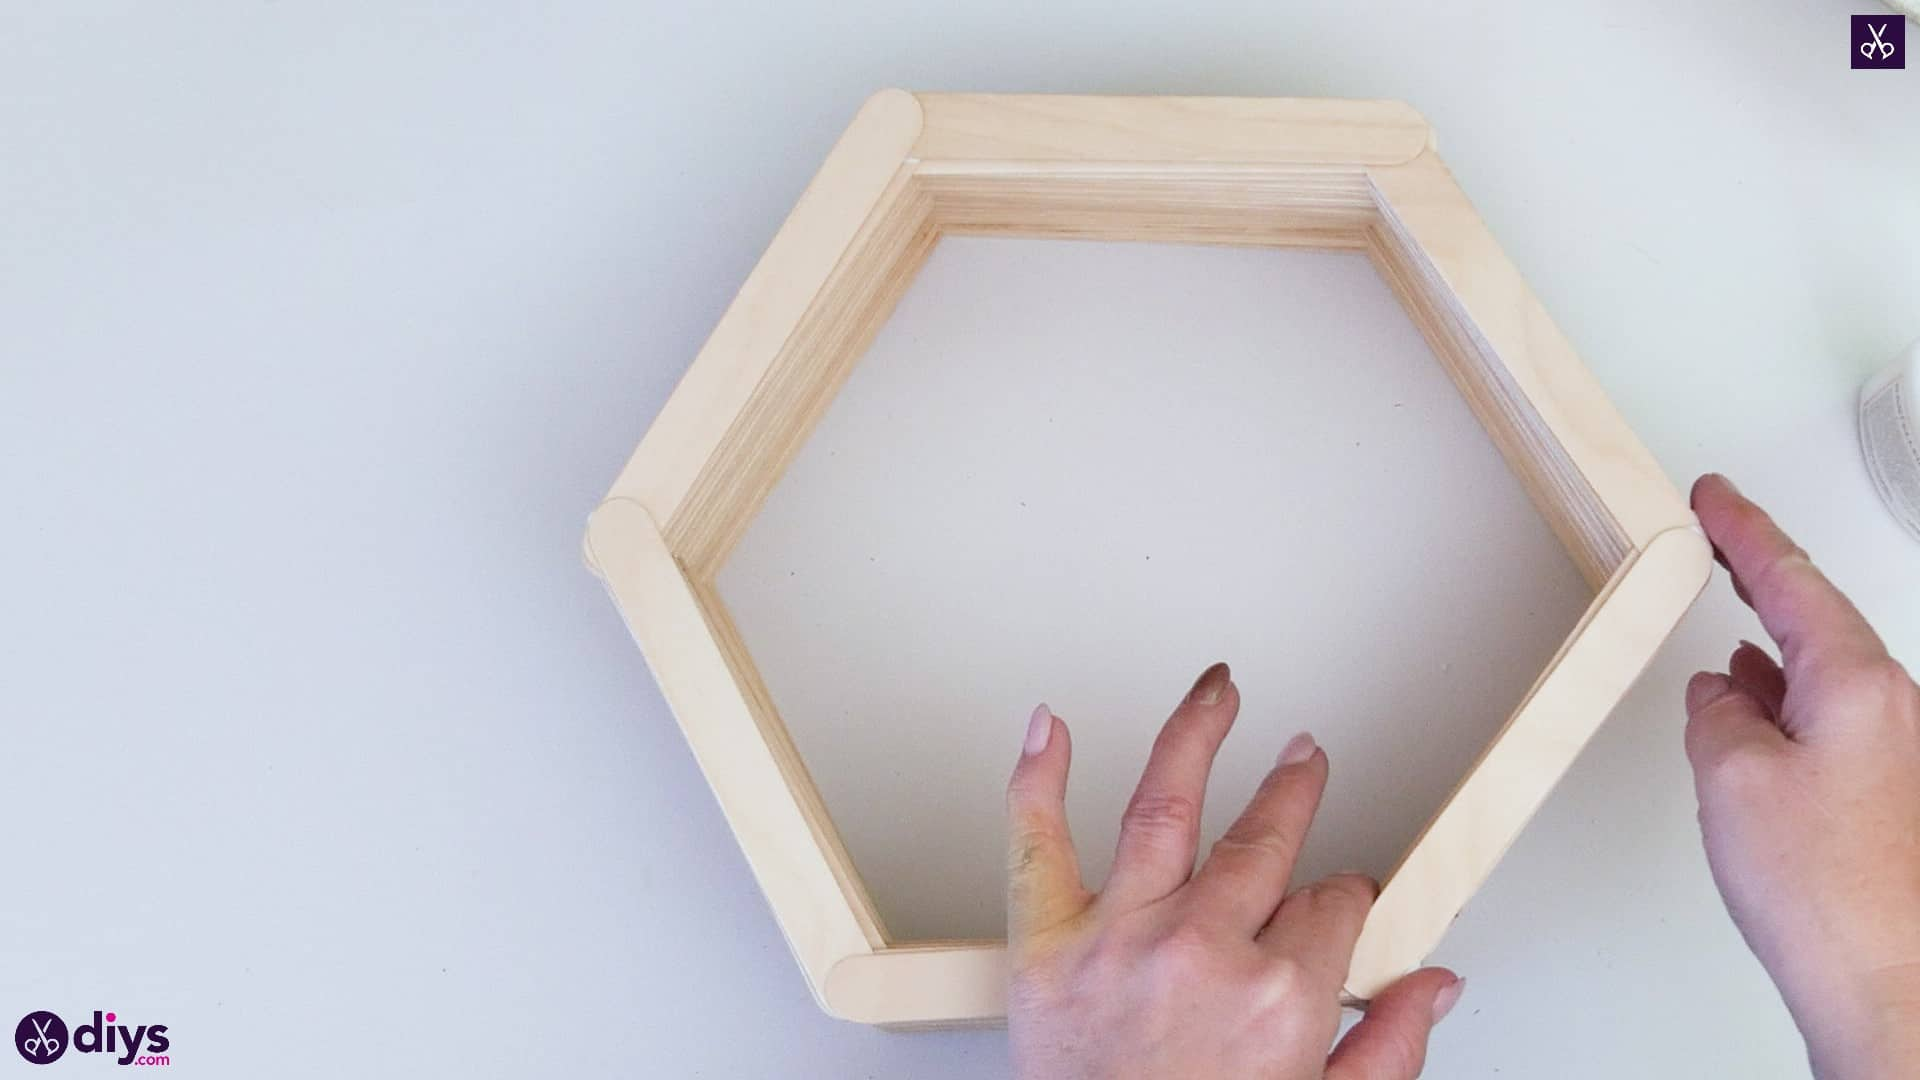 Diy popsicle stick hexagon shelf step 3f